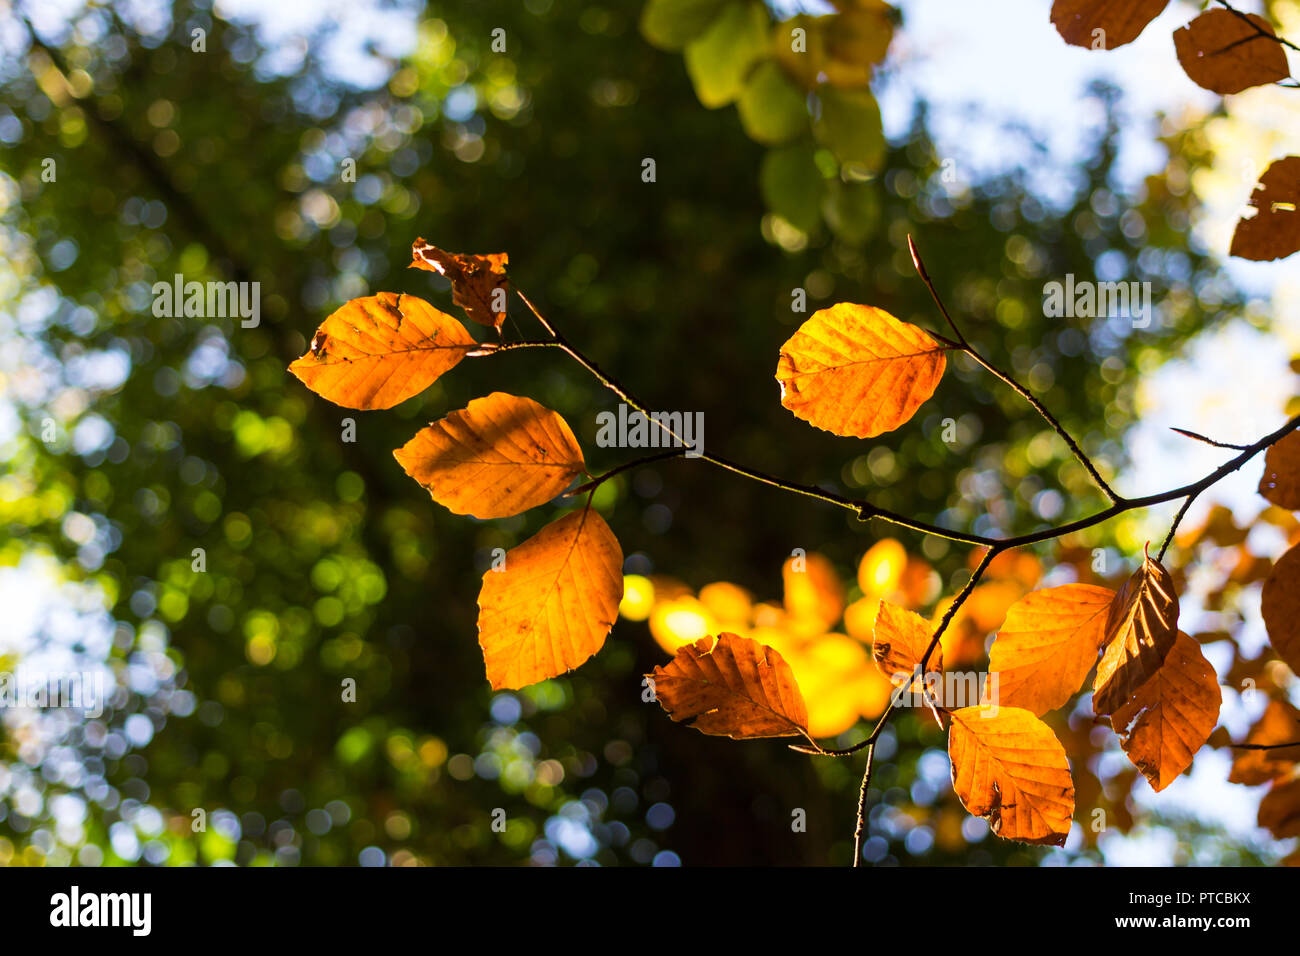 Copper brown red leaves against a green background. - Stock Image